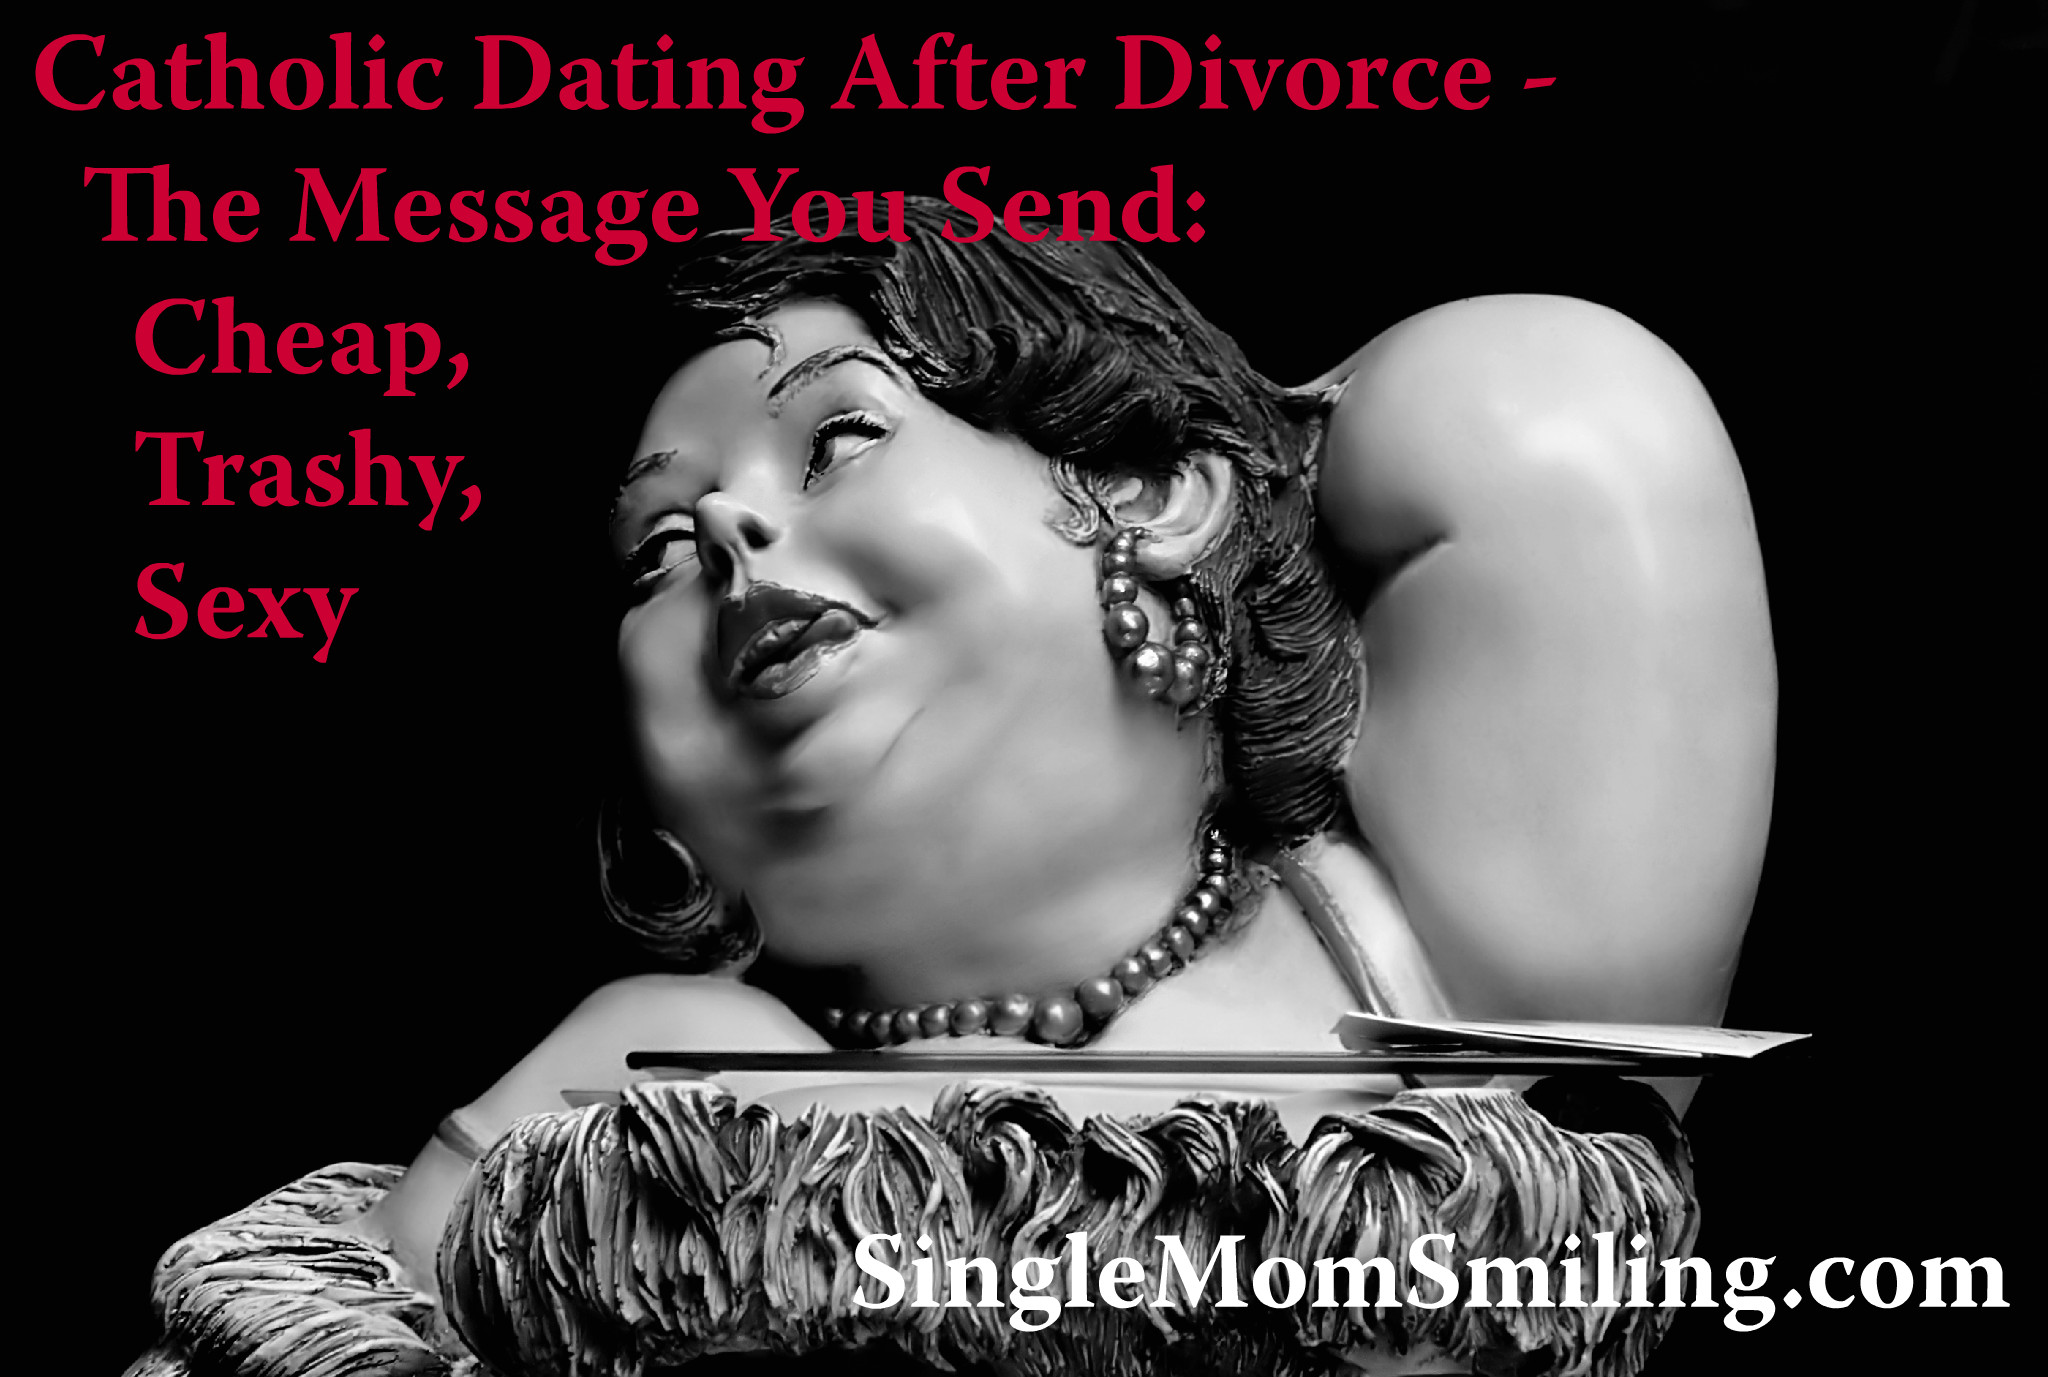 christian views on dating after divorce